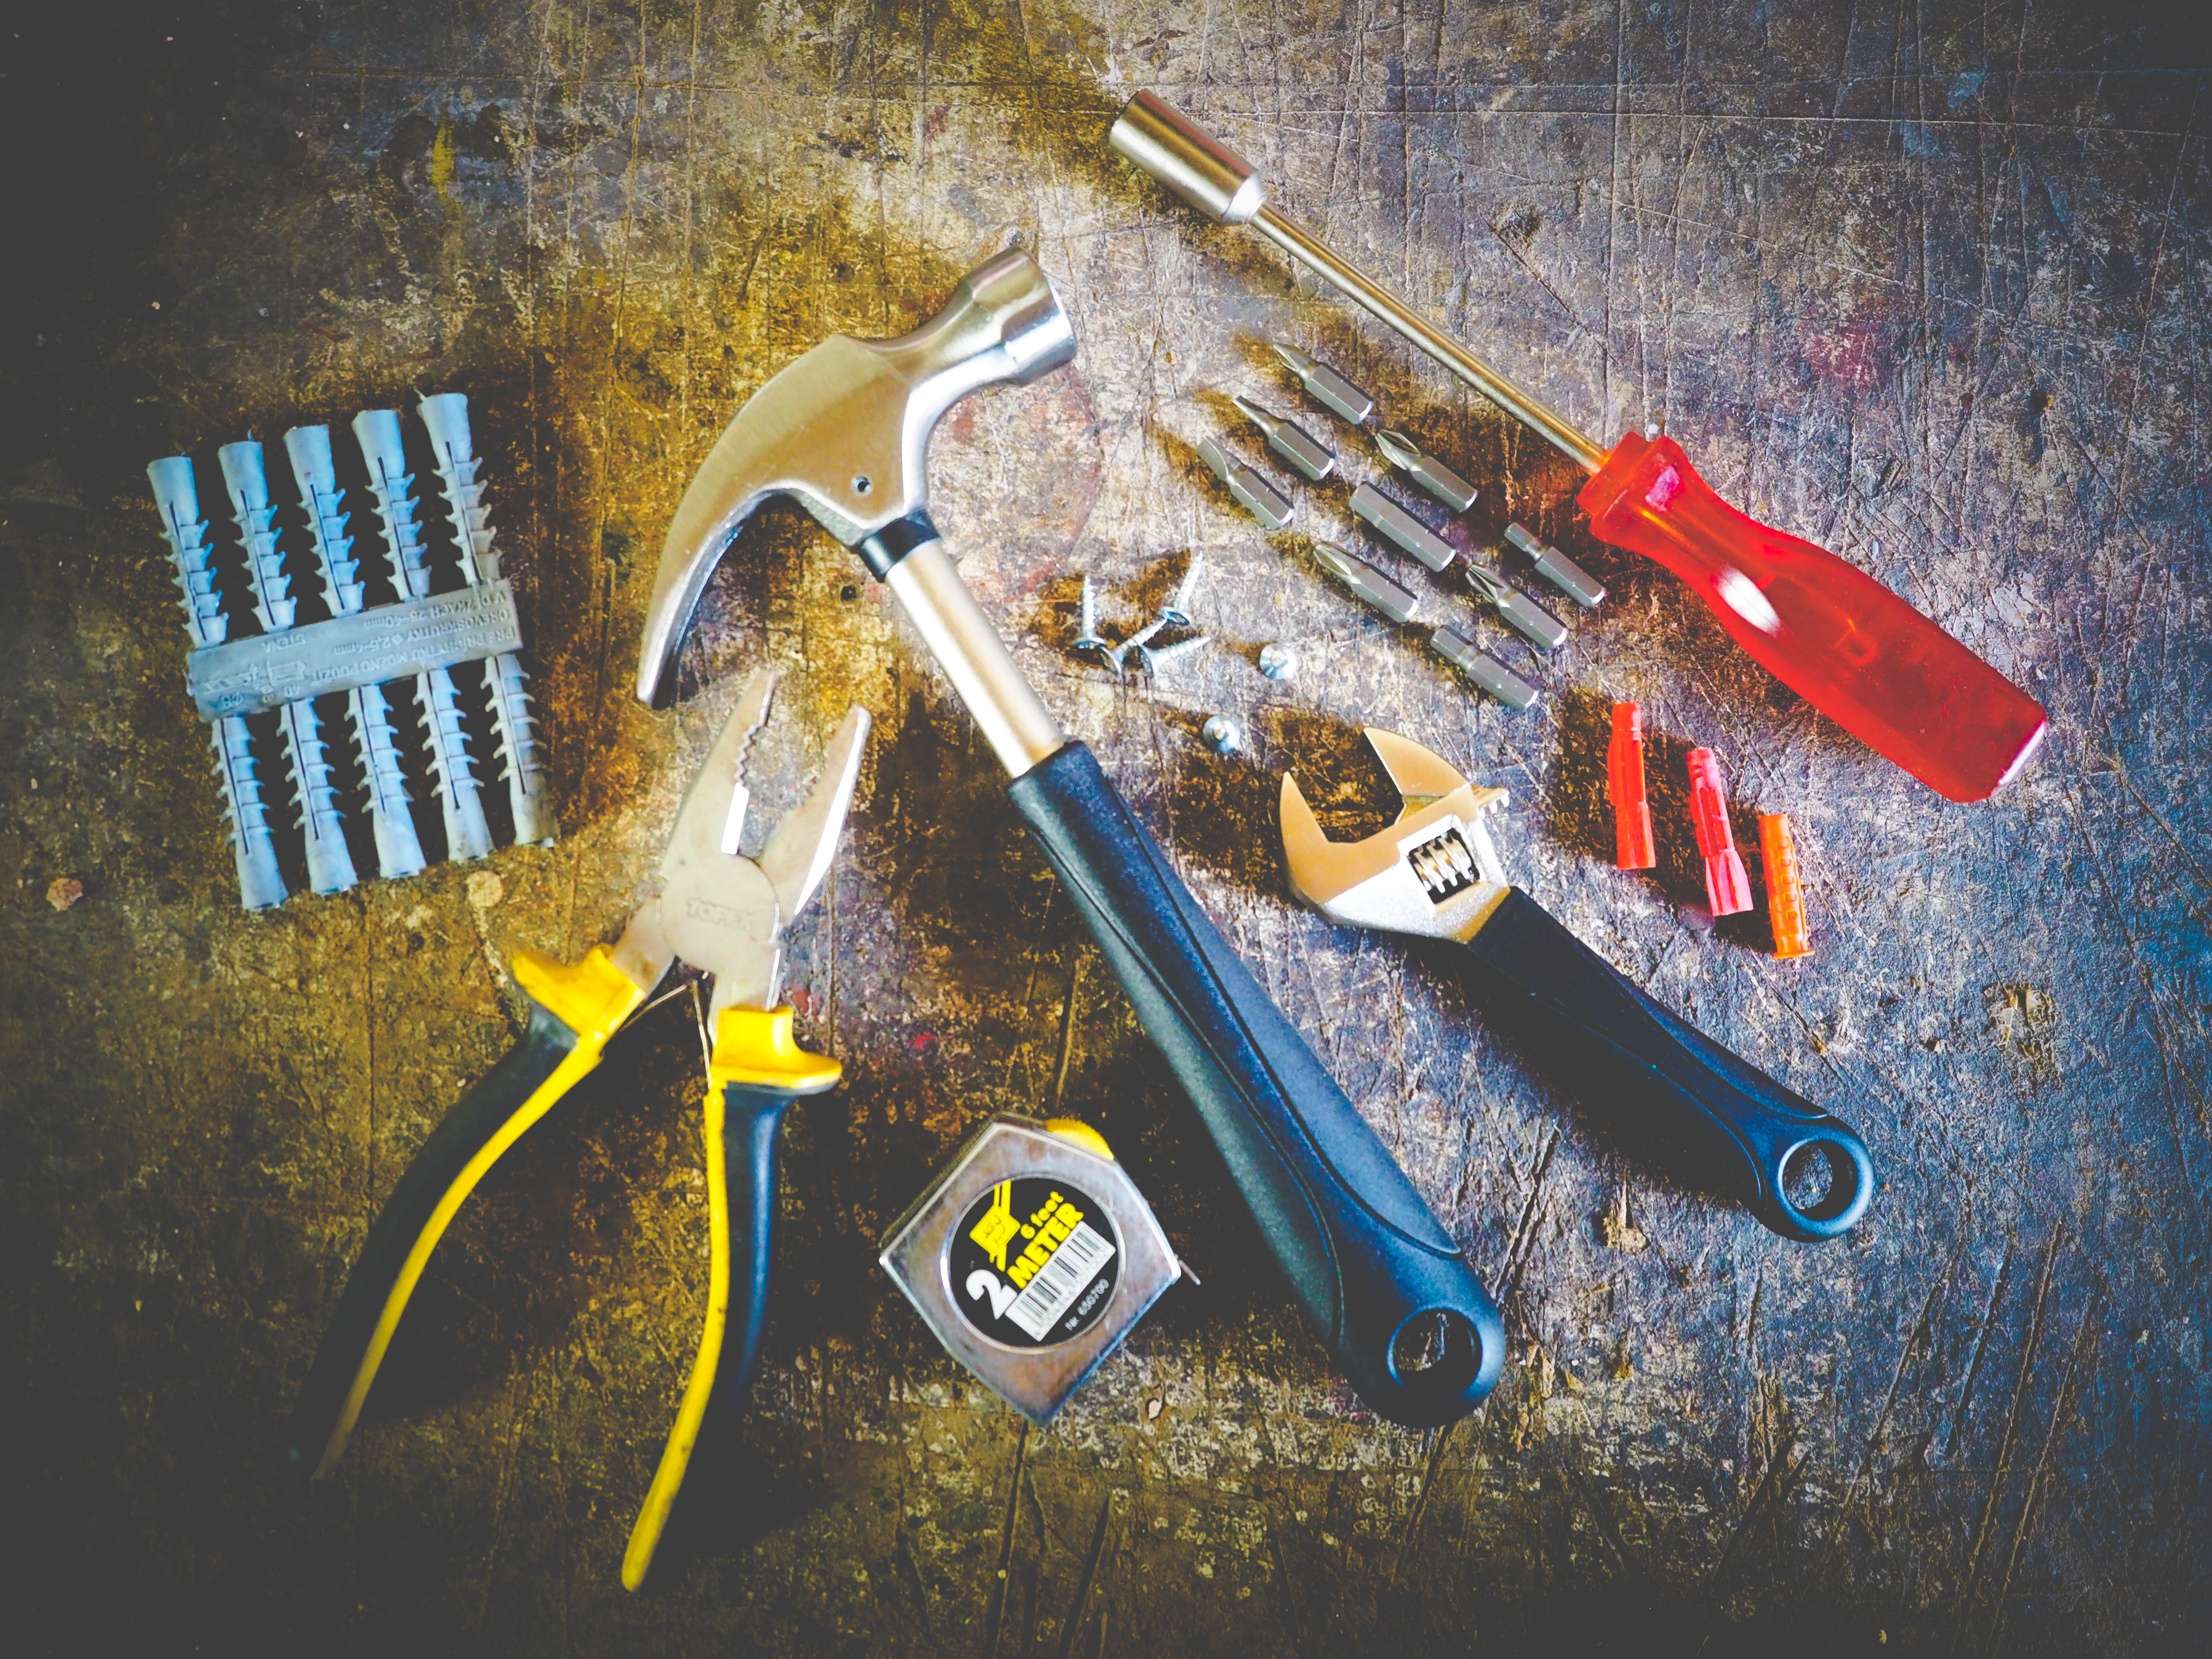 Hand and Portable Powered Tools – $9.95